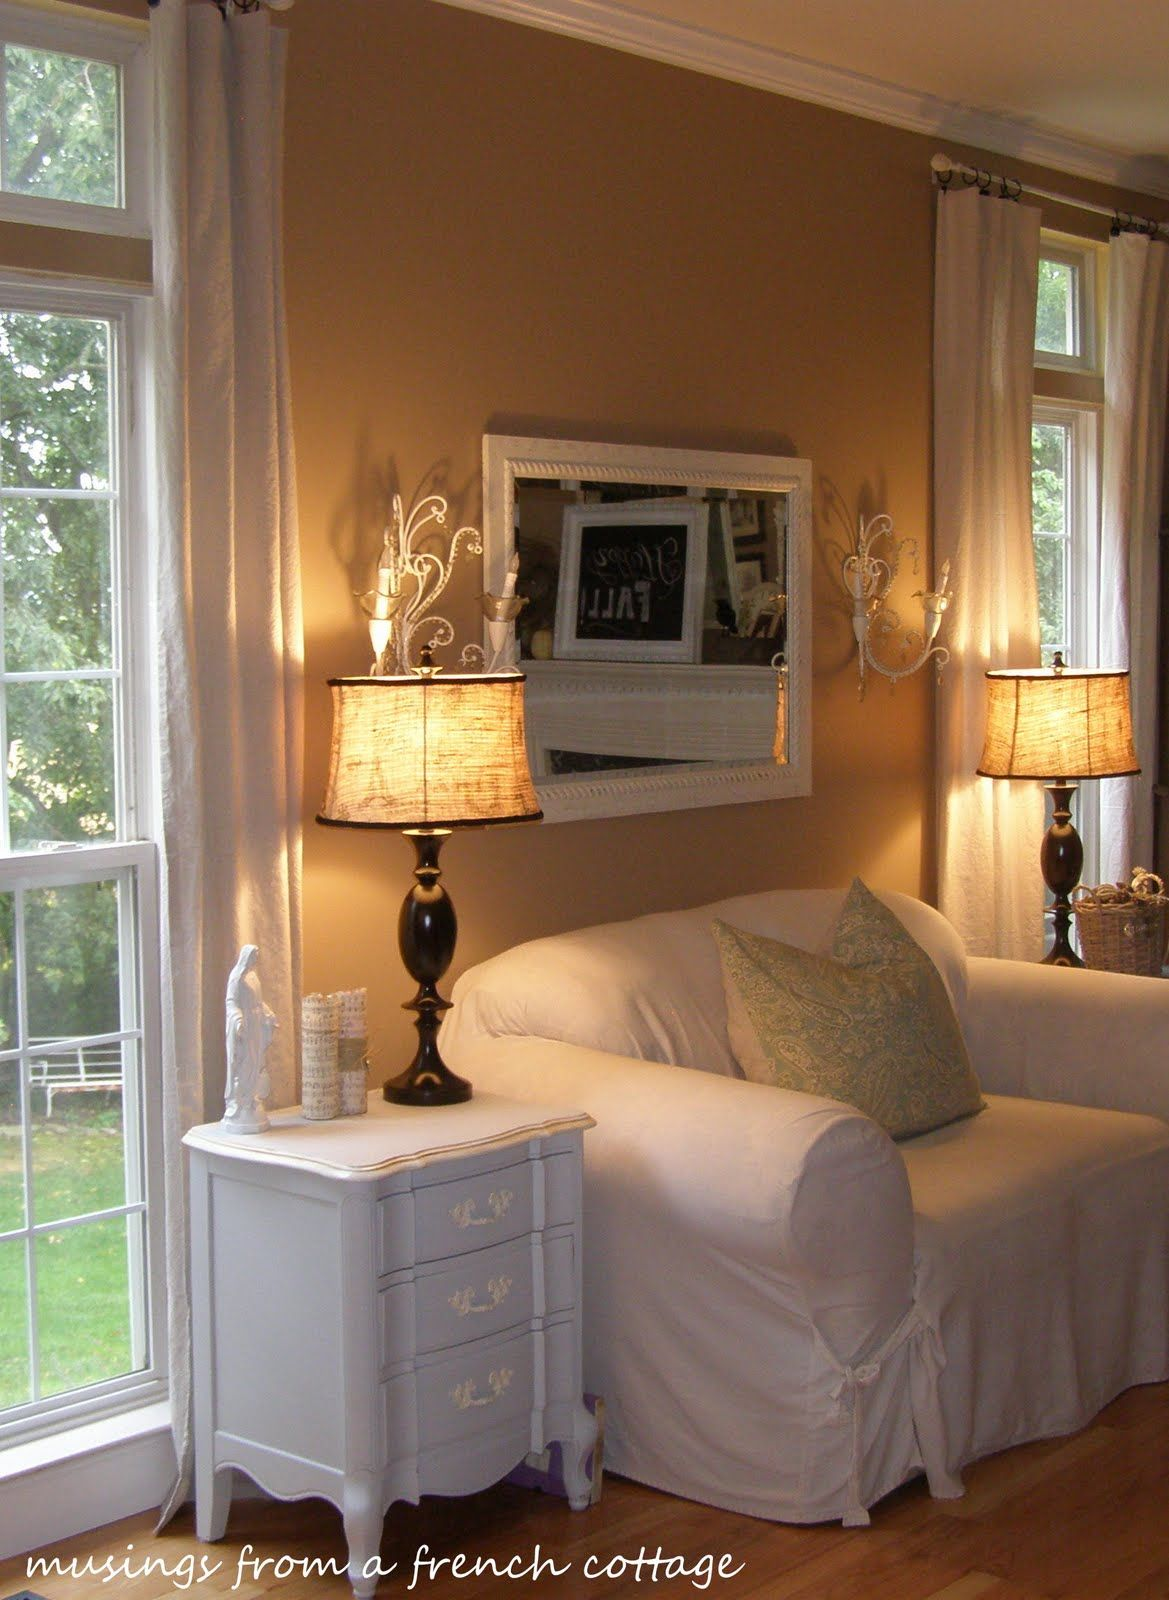 Musings From A French Cottage: Painter's Drop Cloth Curtains